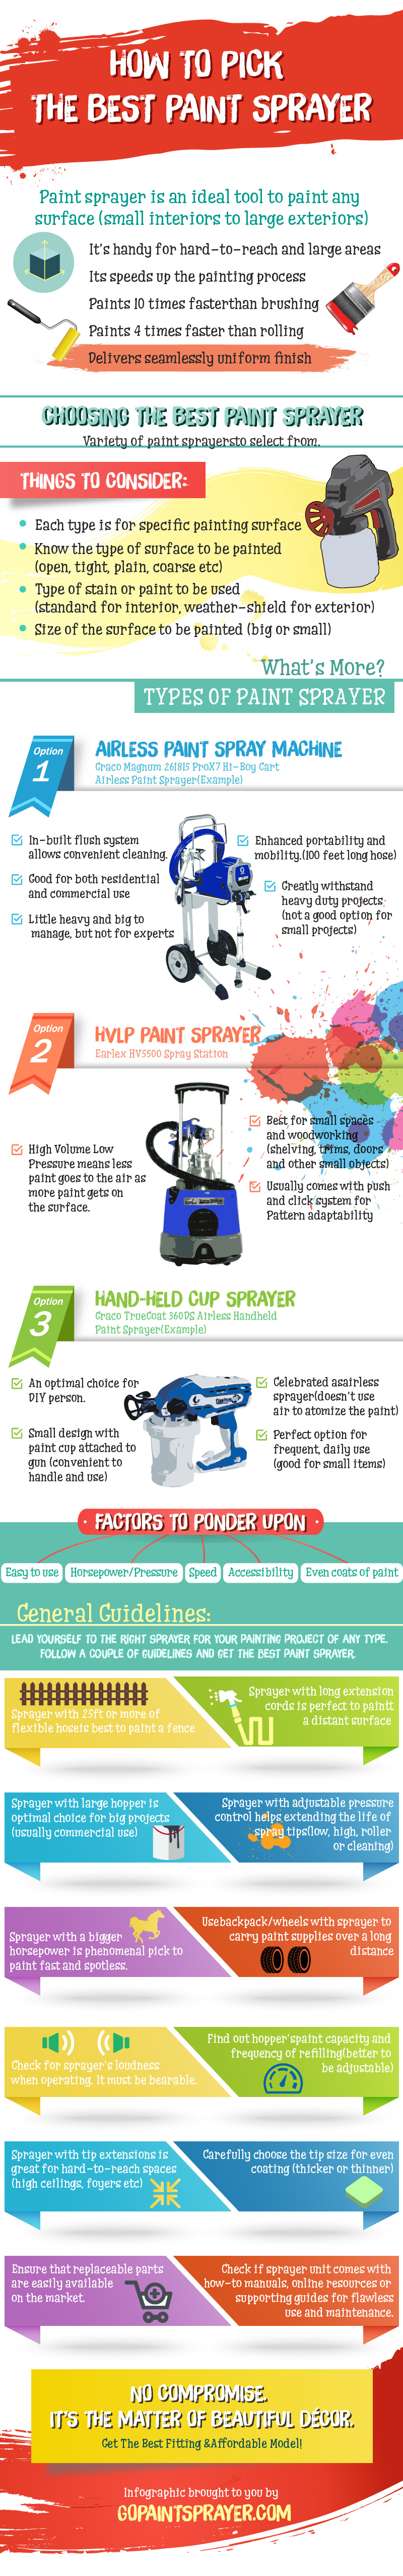 How to Pick the Best Paint Sprayer-01